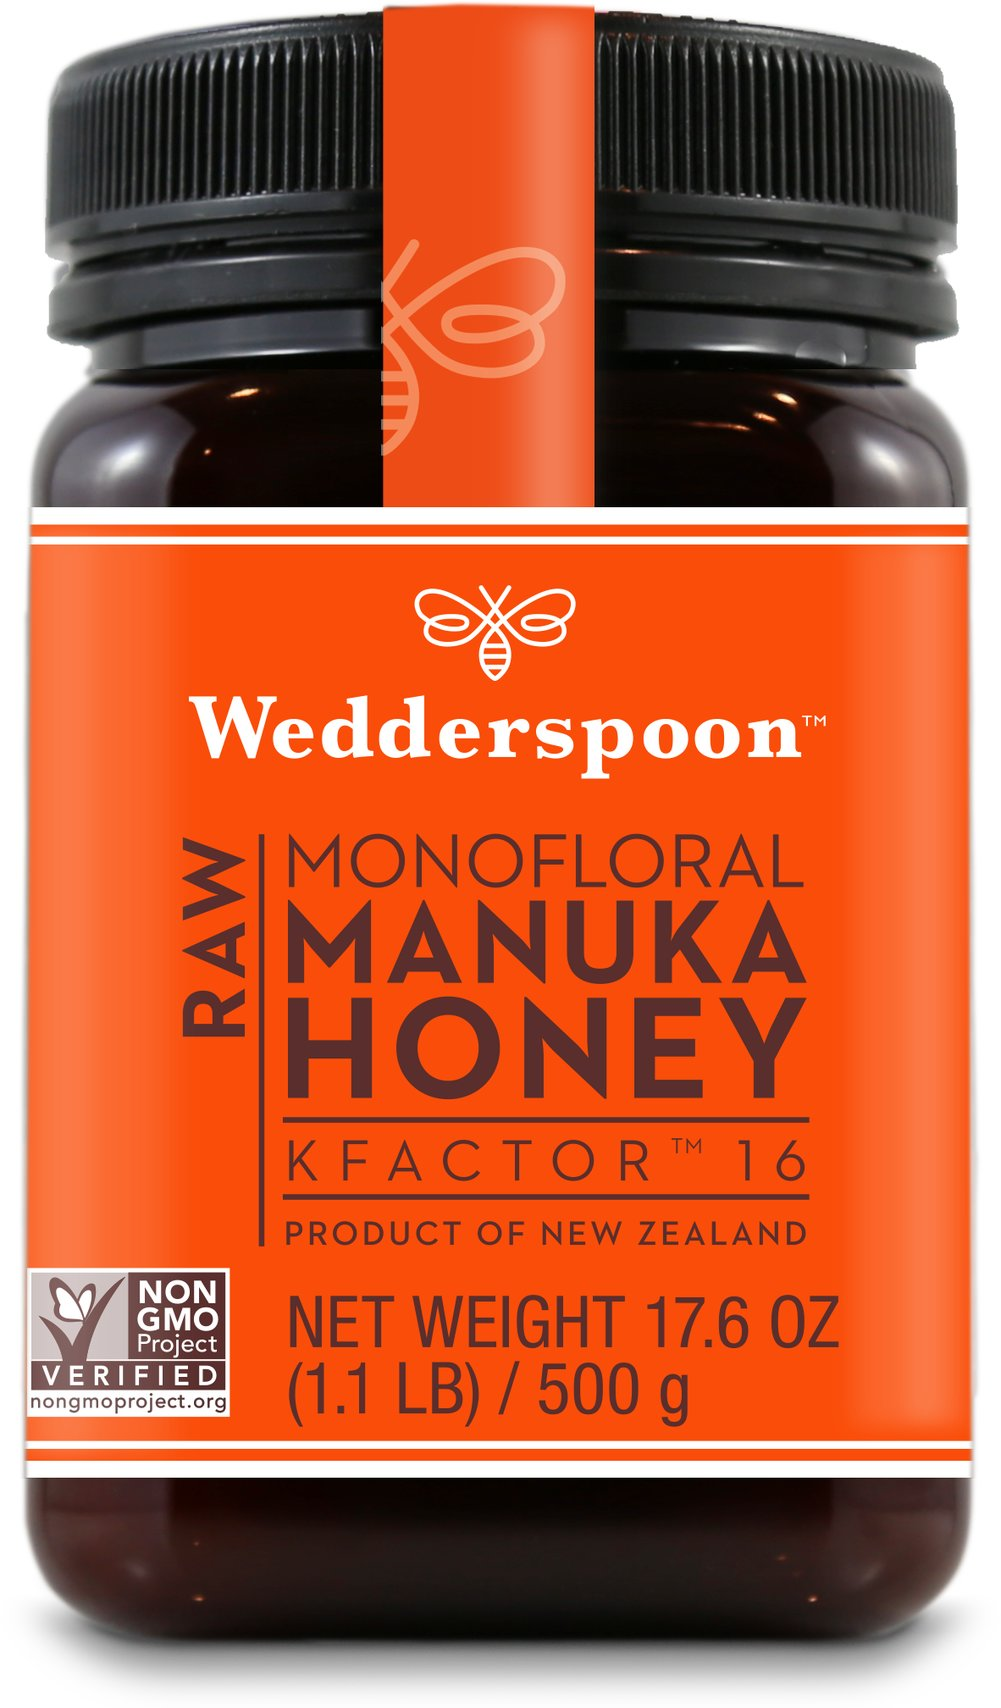 100% Raw Premium Manuka Honey KFactor 16